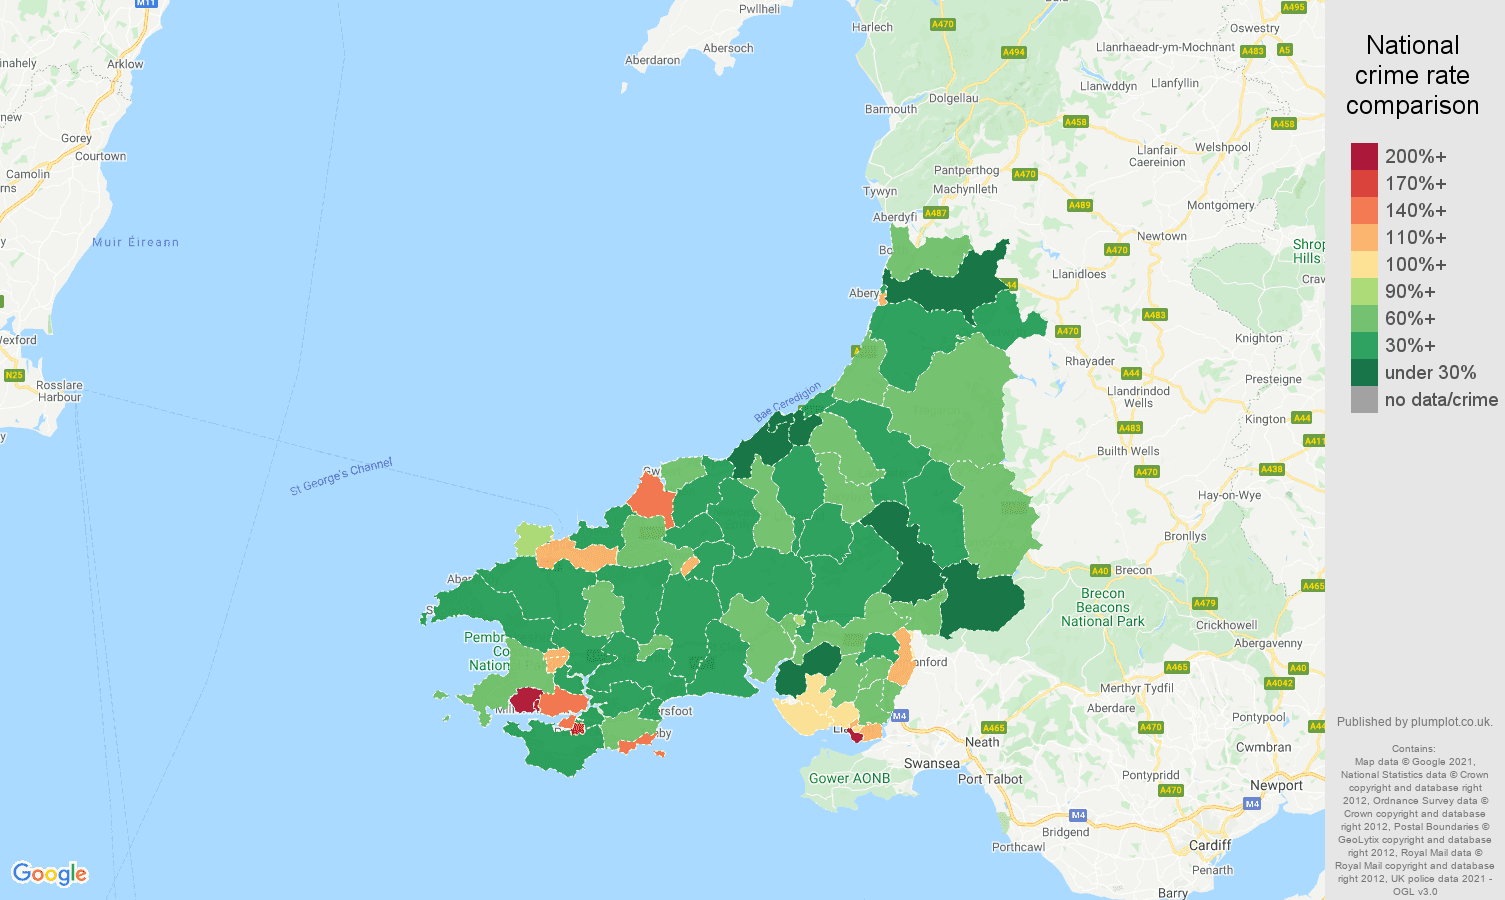 Dyfed criminal damage and arson crime rate comparison map